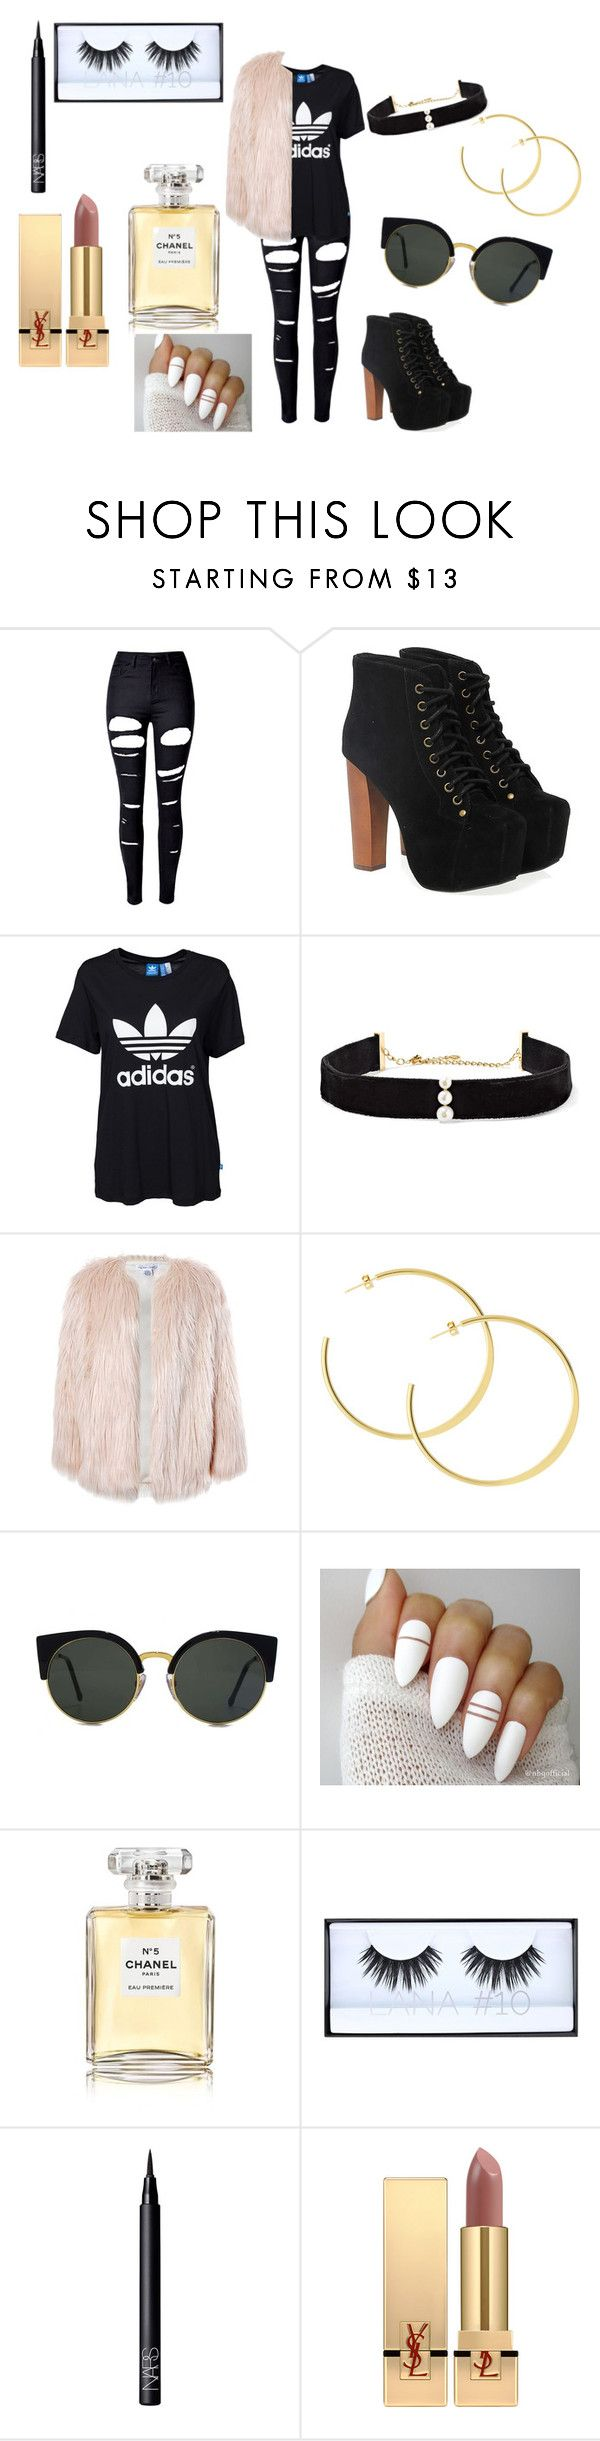 """""""...."""" by kkristinss on Polyvore featuring WithChic, Jeffrey Campbell, adidas Originals, Anissa Kermiche, Sans Souci, RetroSuperFuture, Chanel, Huda Beauty, NARS Cosmetics and Yves Saint Laurent"""